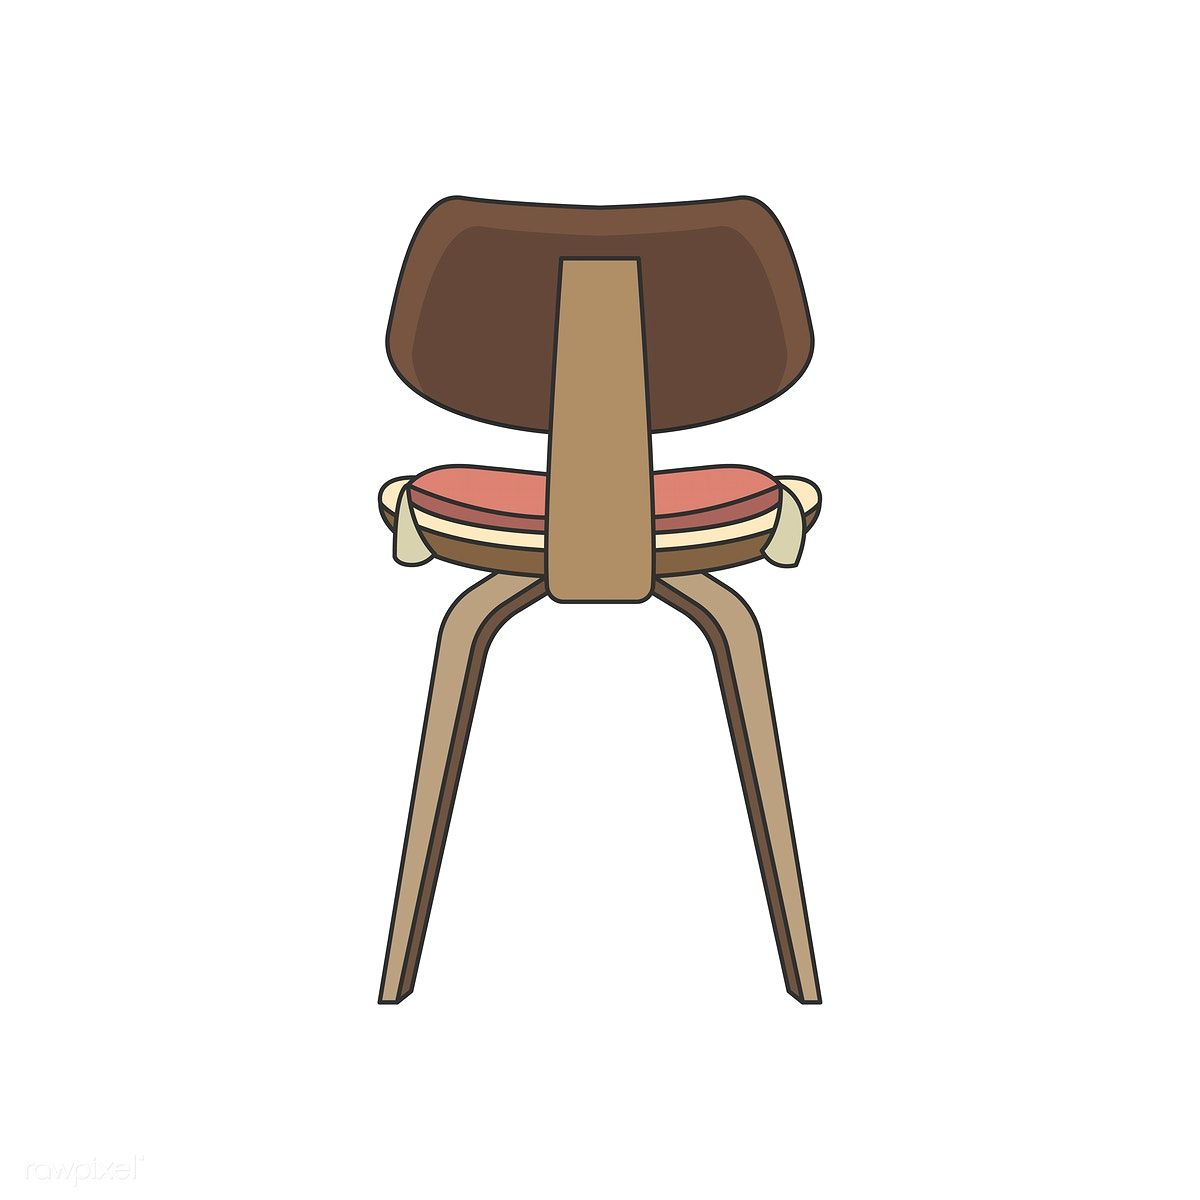 Illustration Of The Back Of A Chair Free Image By Rawpixel Com In 2020 Illustration Vector Free Vector